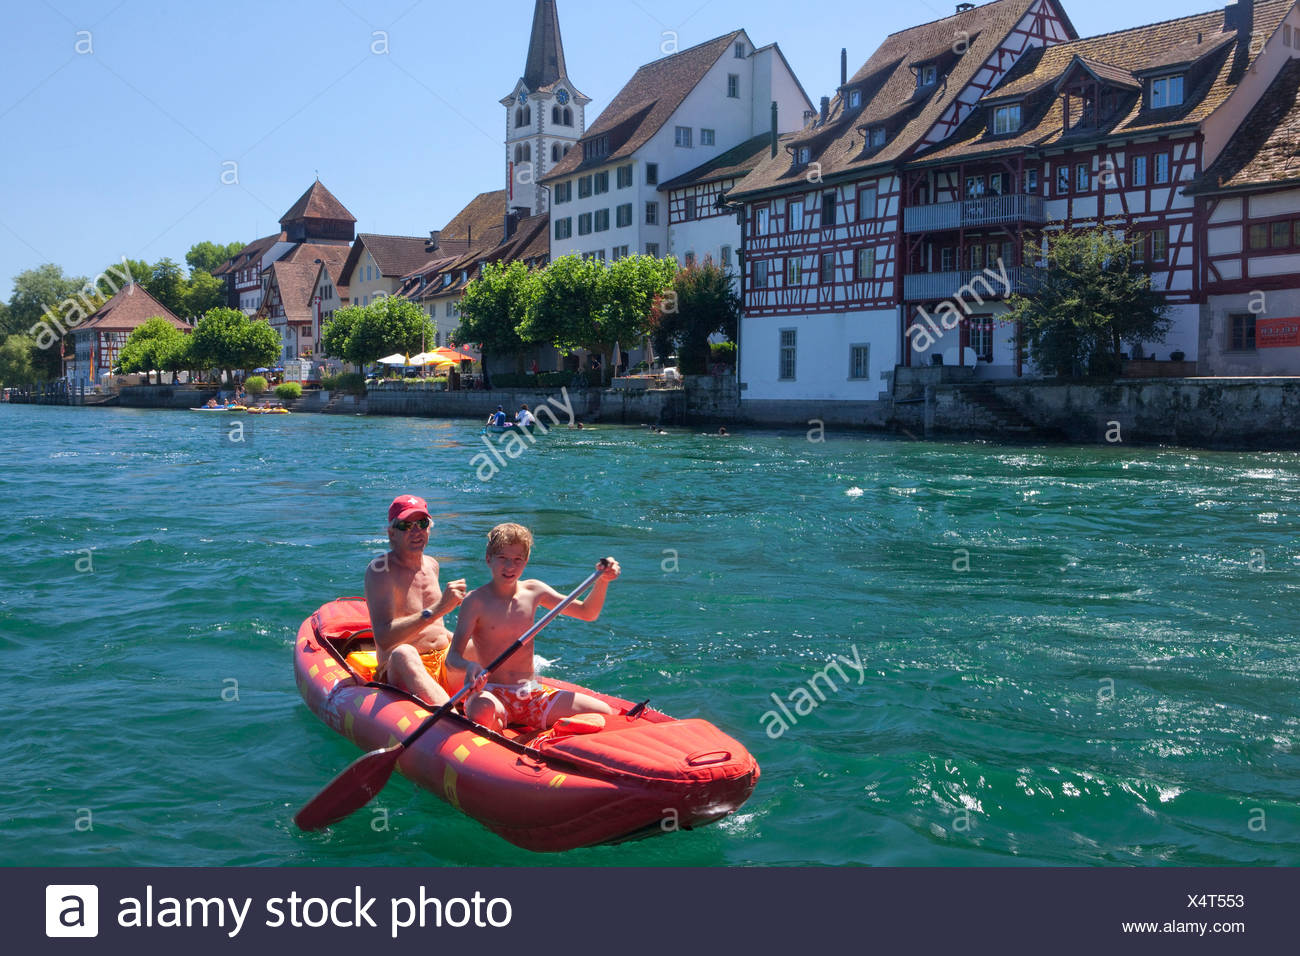 Switzerland Europe ship boat ships boats water sport boat canoe rubber dinghy life raft canton TG Thurgau father son row Rhine - Stock Image